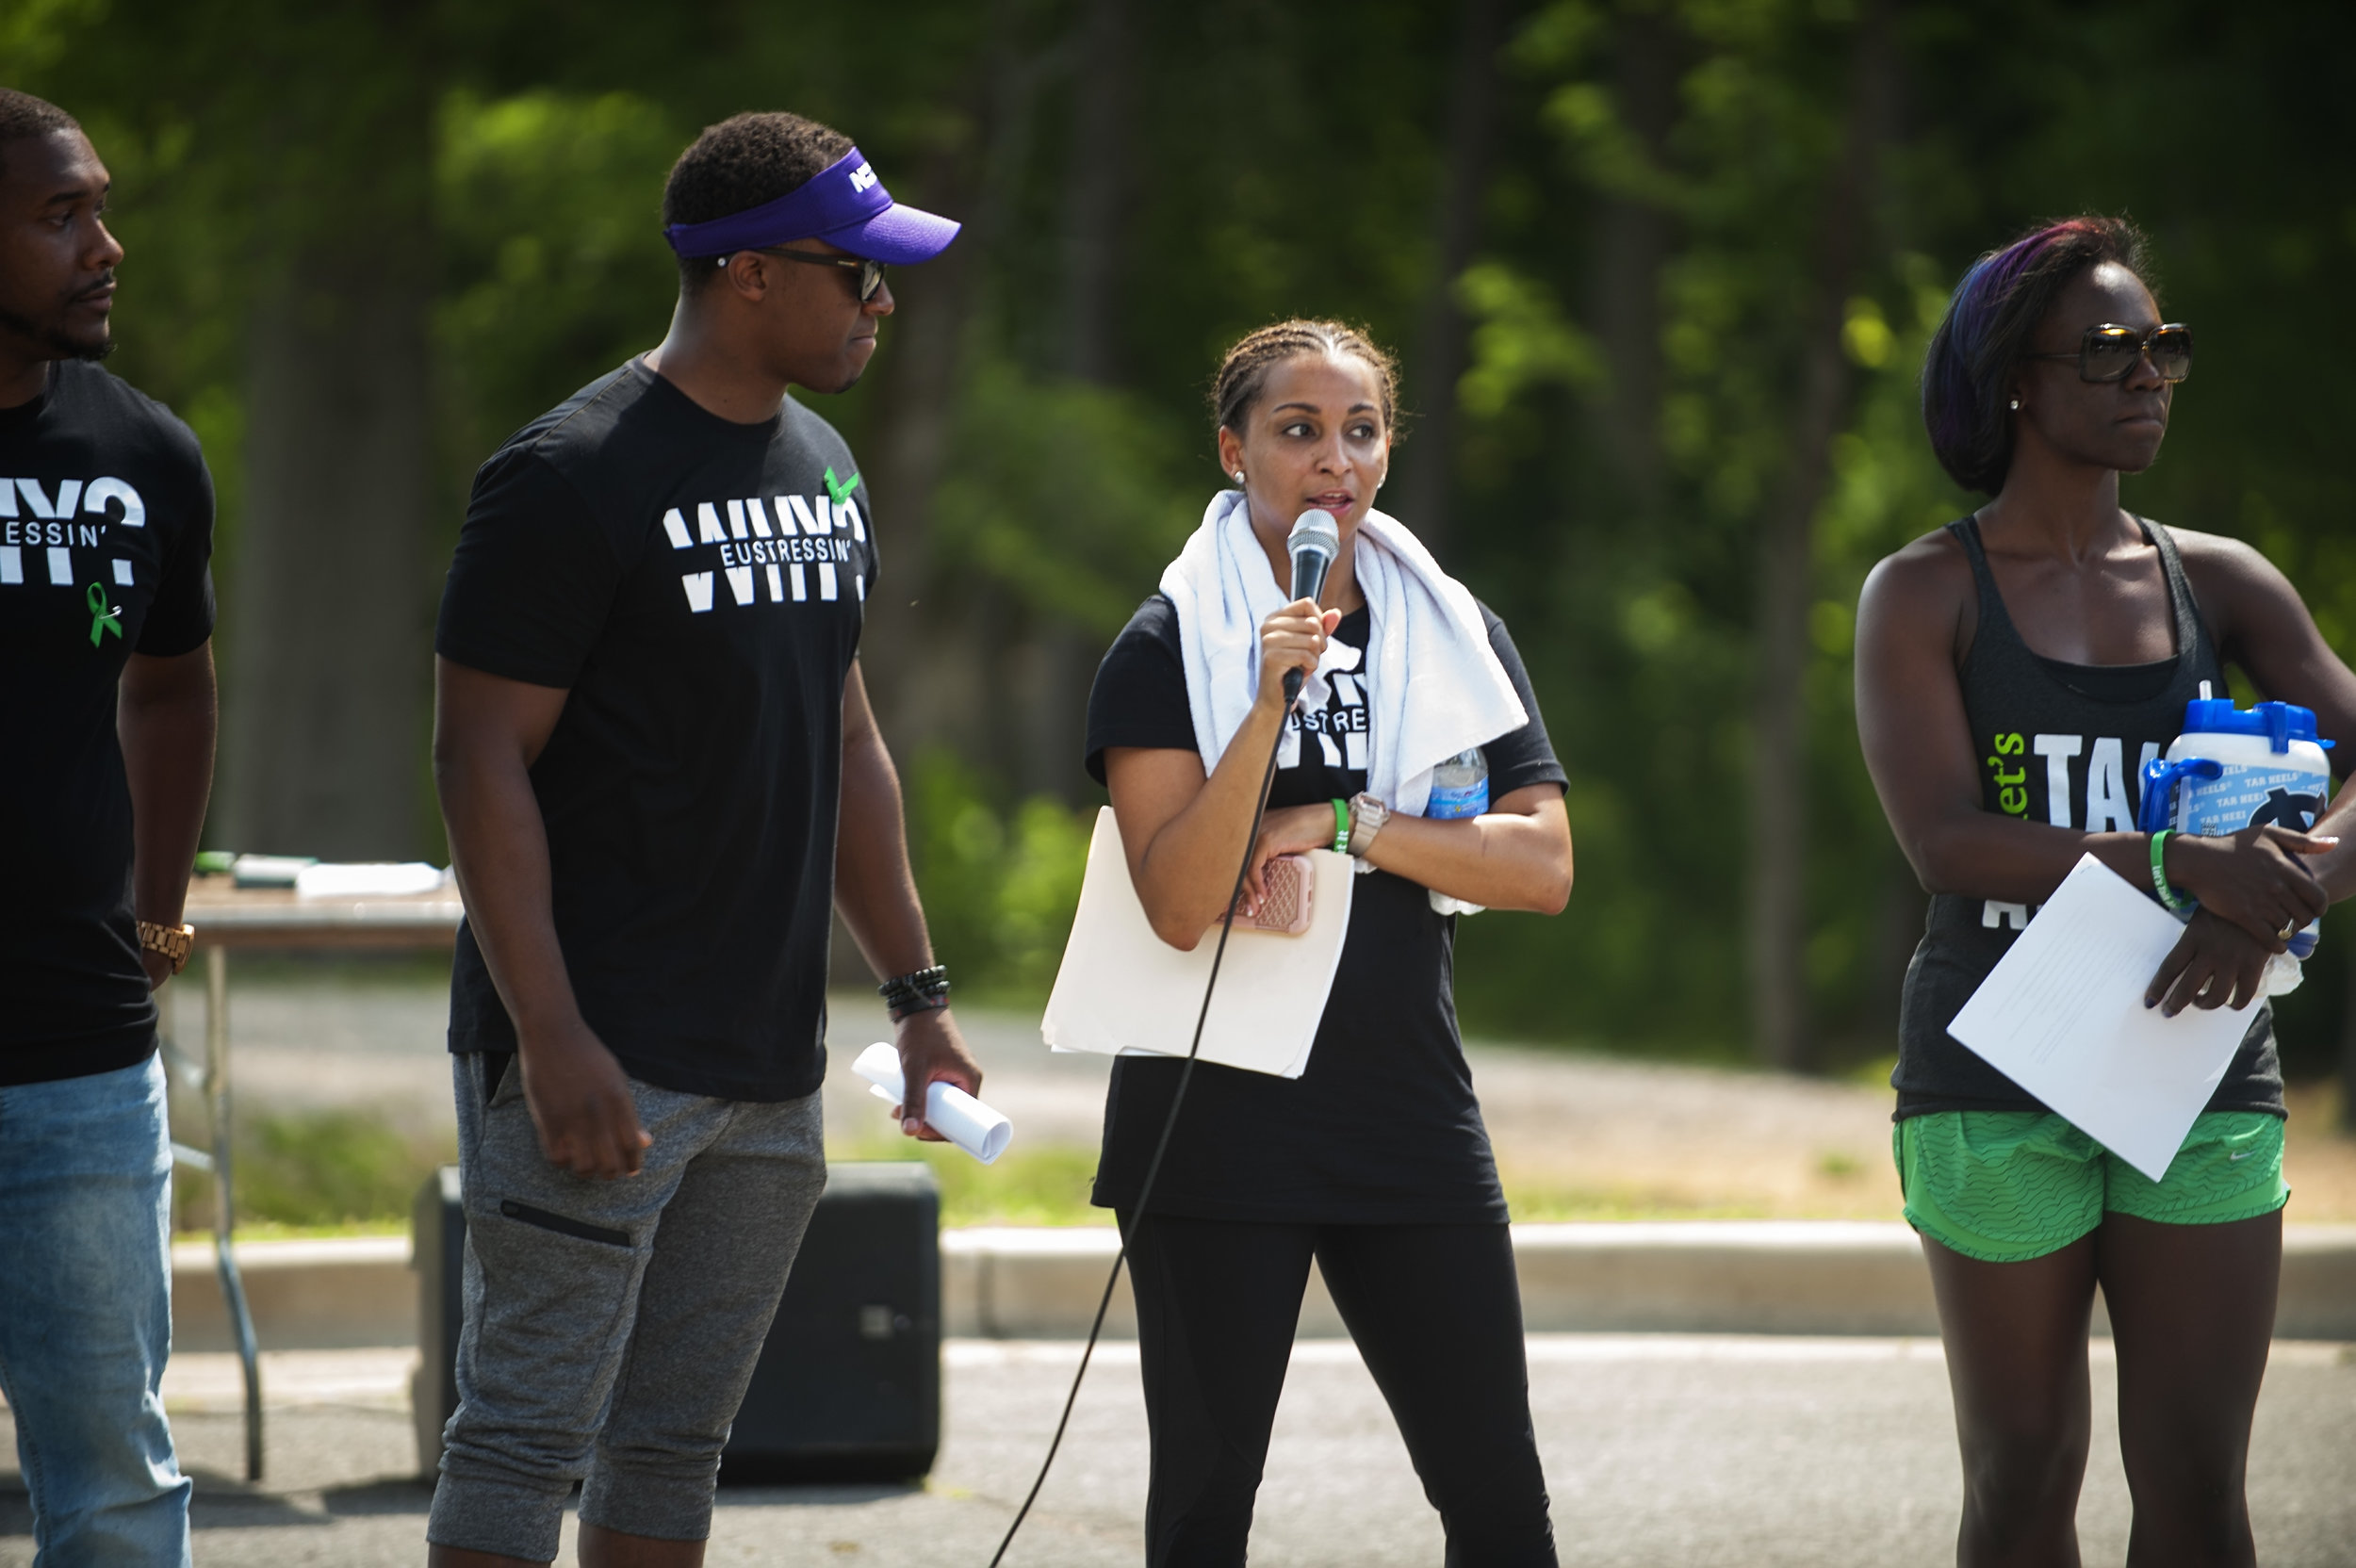 2nd Annual Let's Talk About It Mental Health Awareness Walk @ Park Rd Park 5-20-17 by Jon Strayhorn 108.jpg